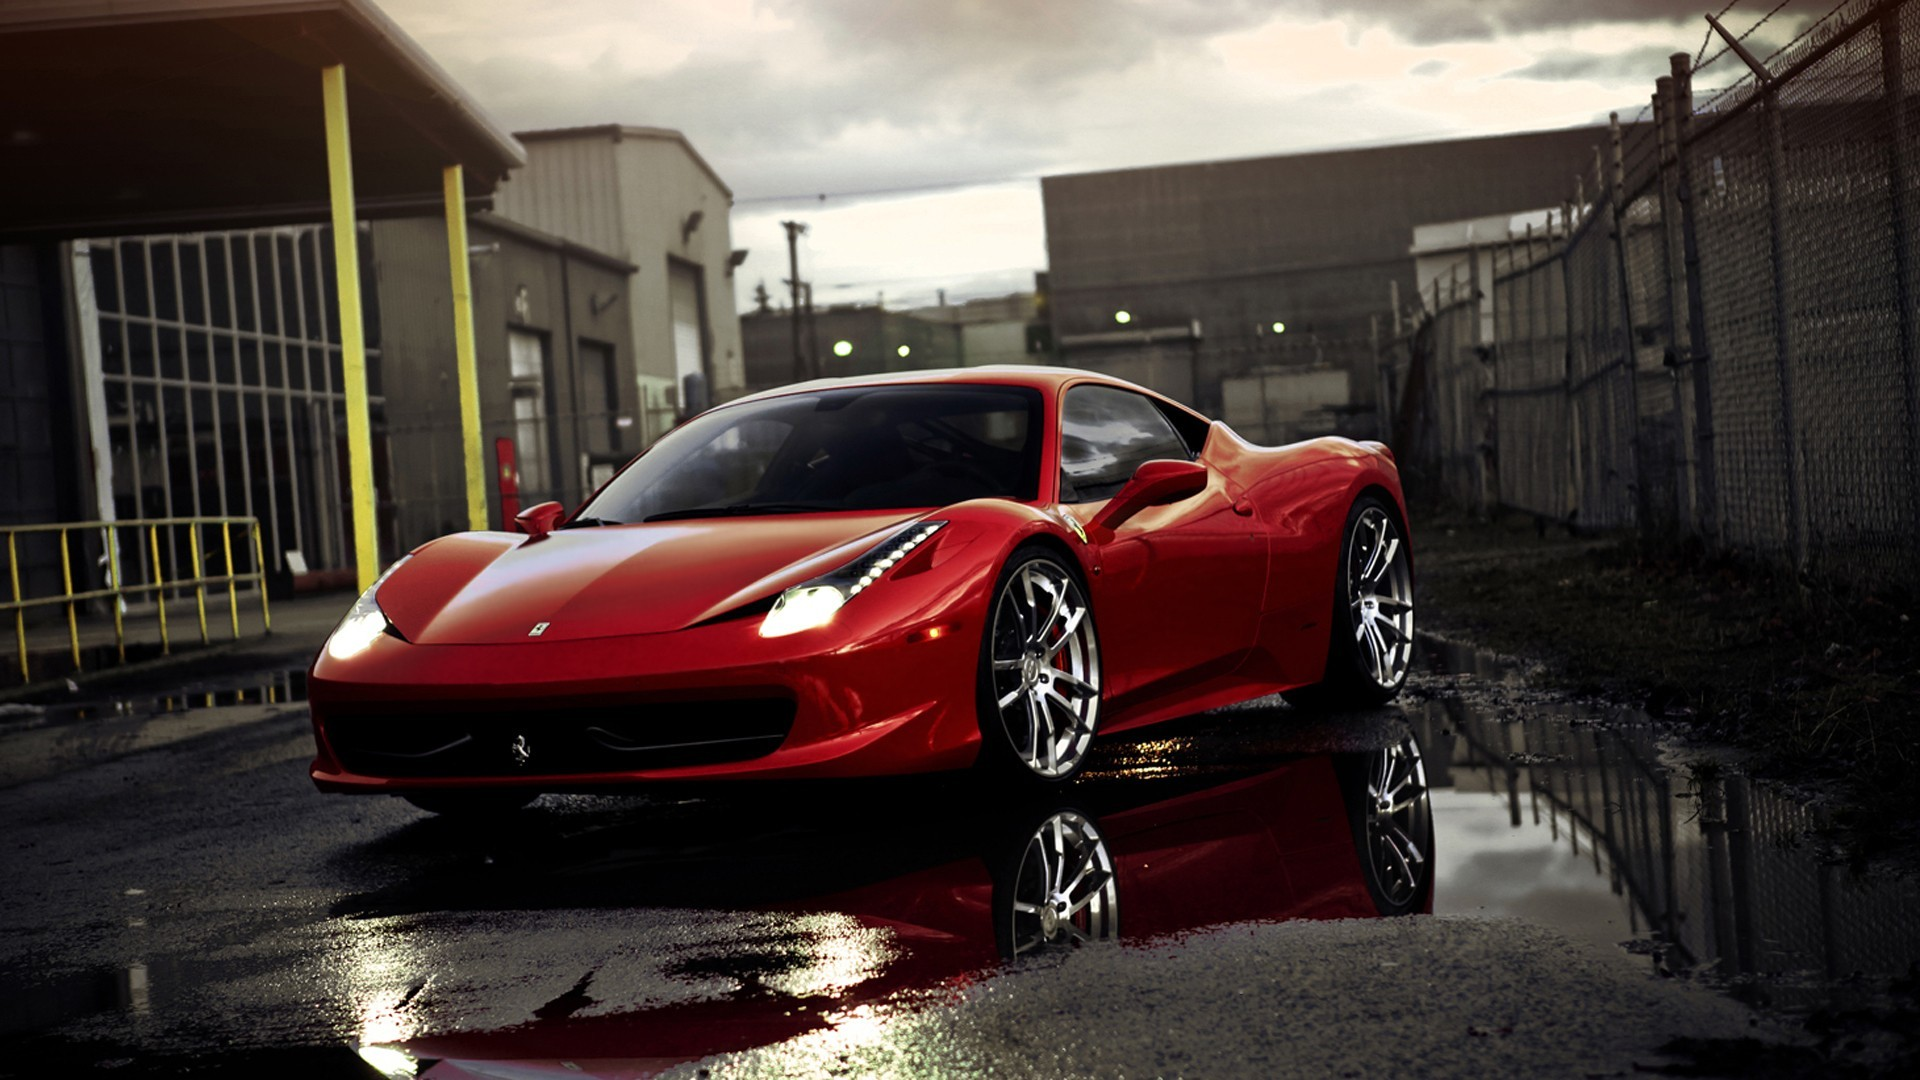 35+ Car wallpapers HD ·① Download free stunning full HD